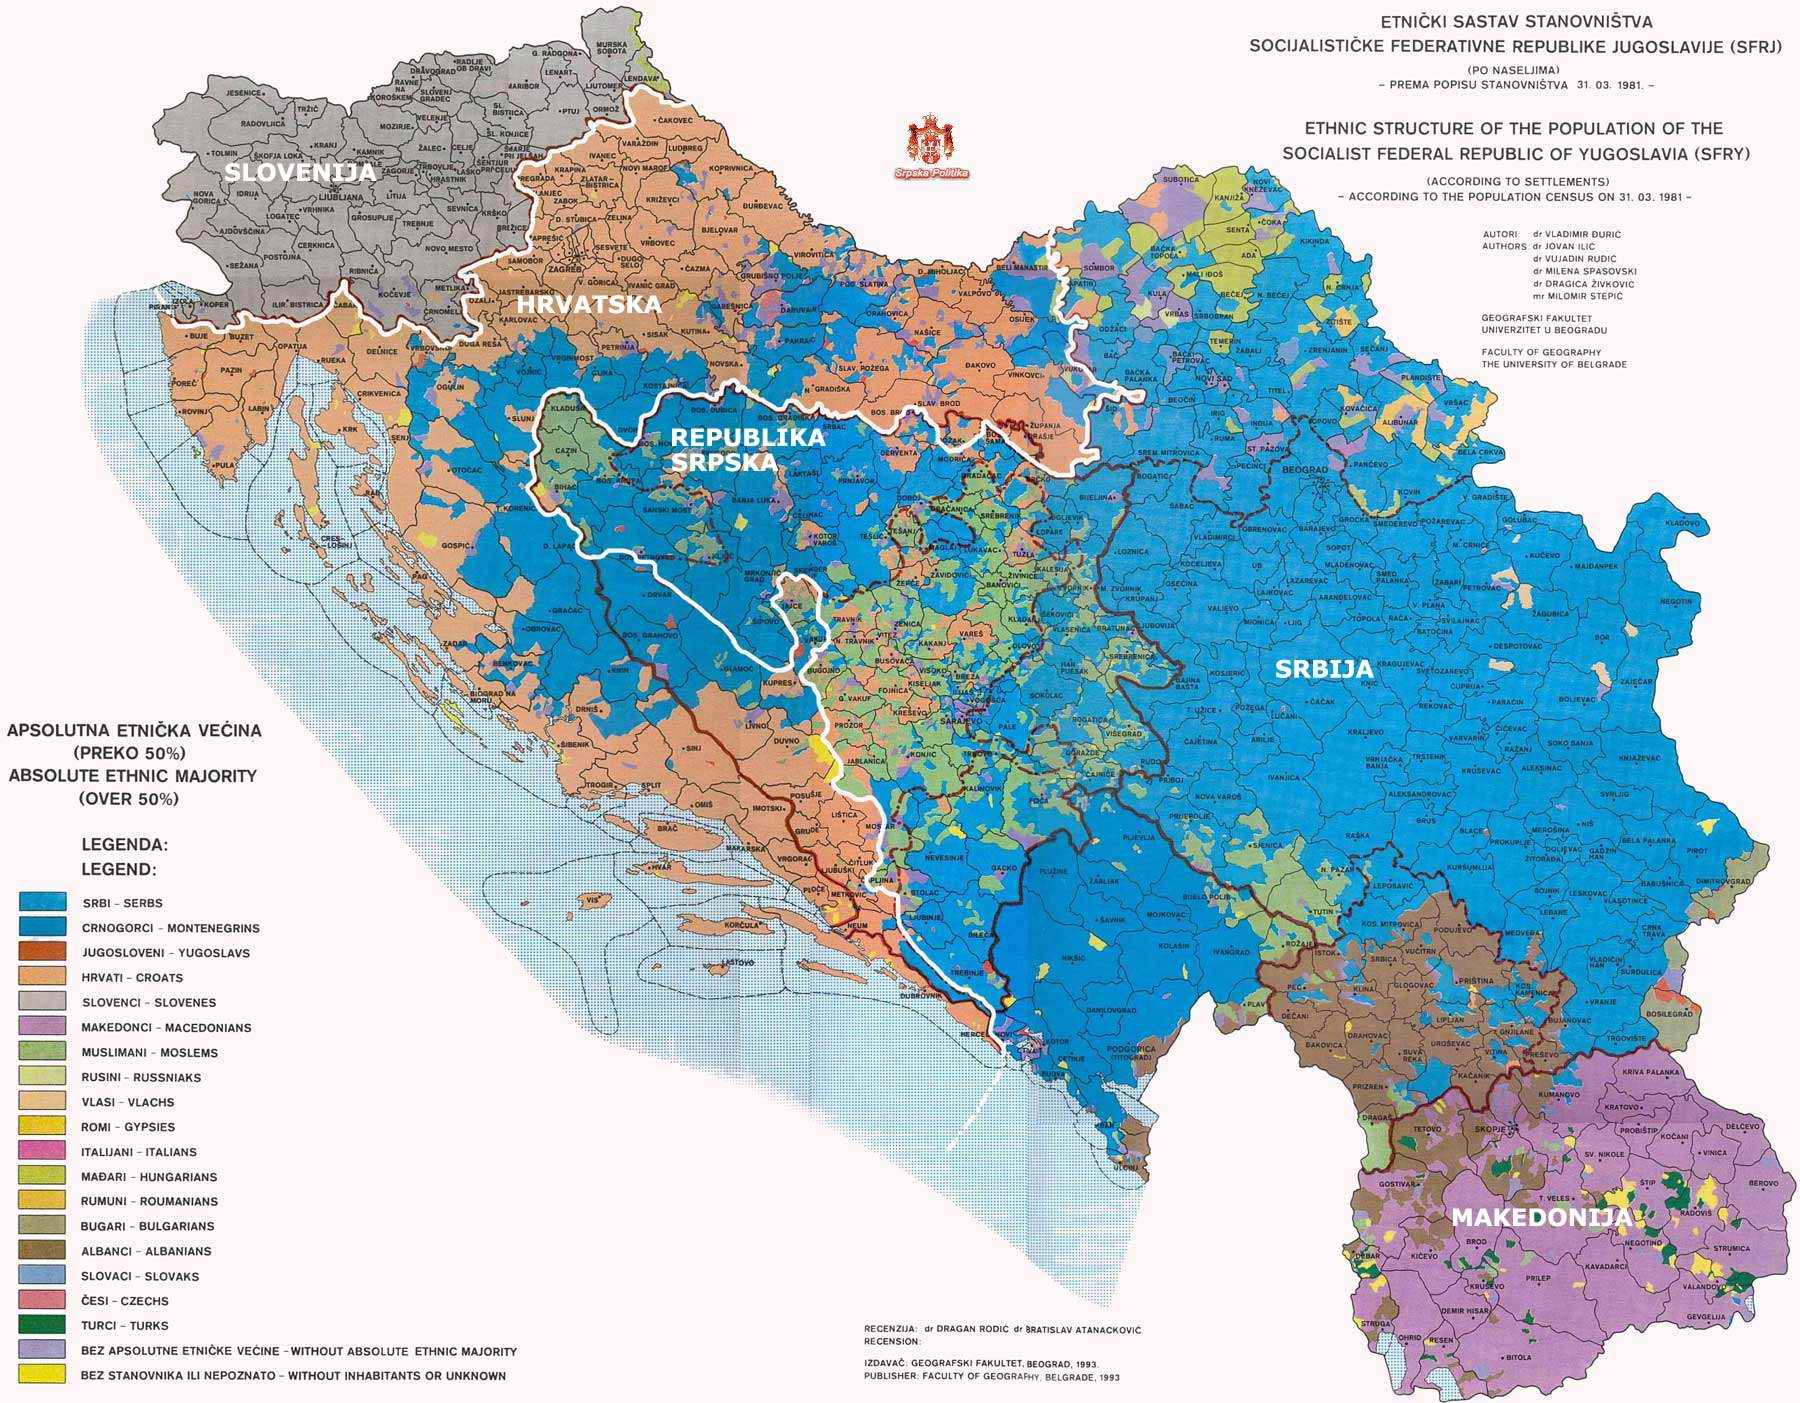 Ethnic map of Socialist Yugoslavia according to 1981 census.